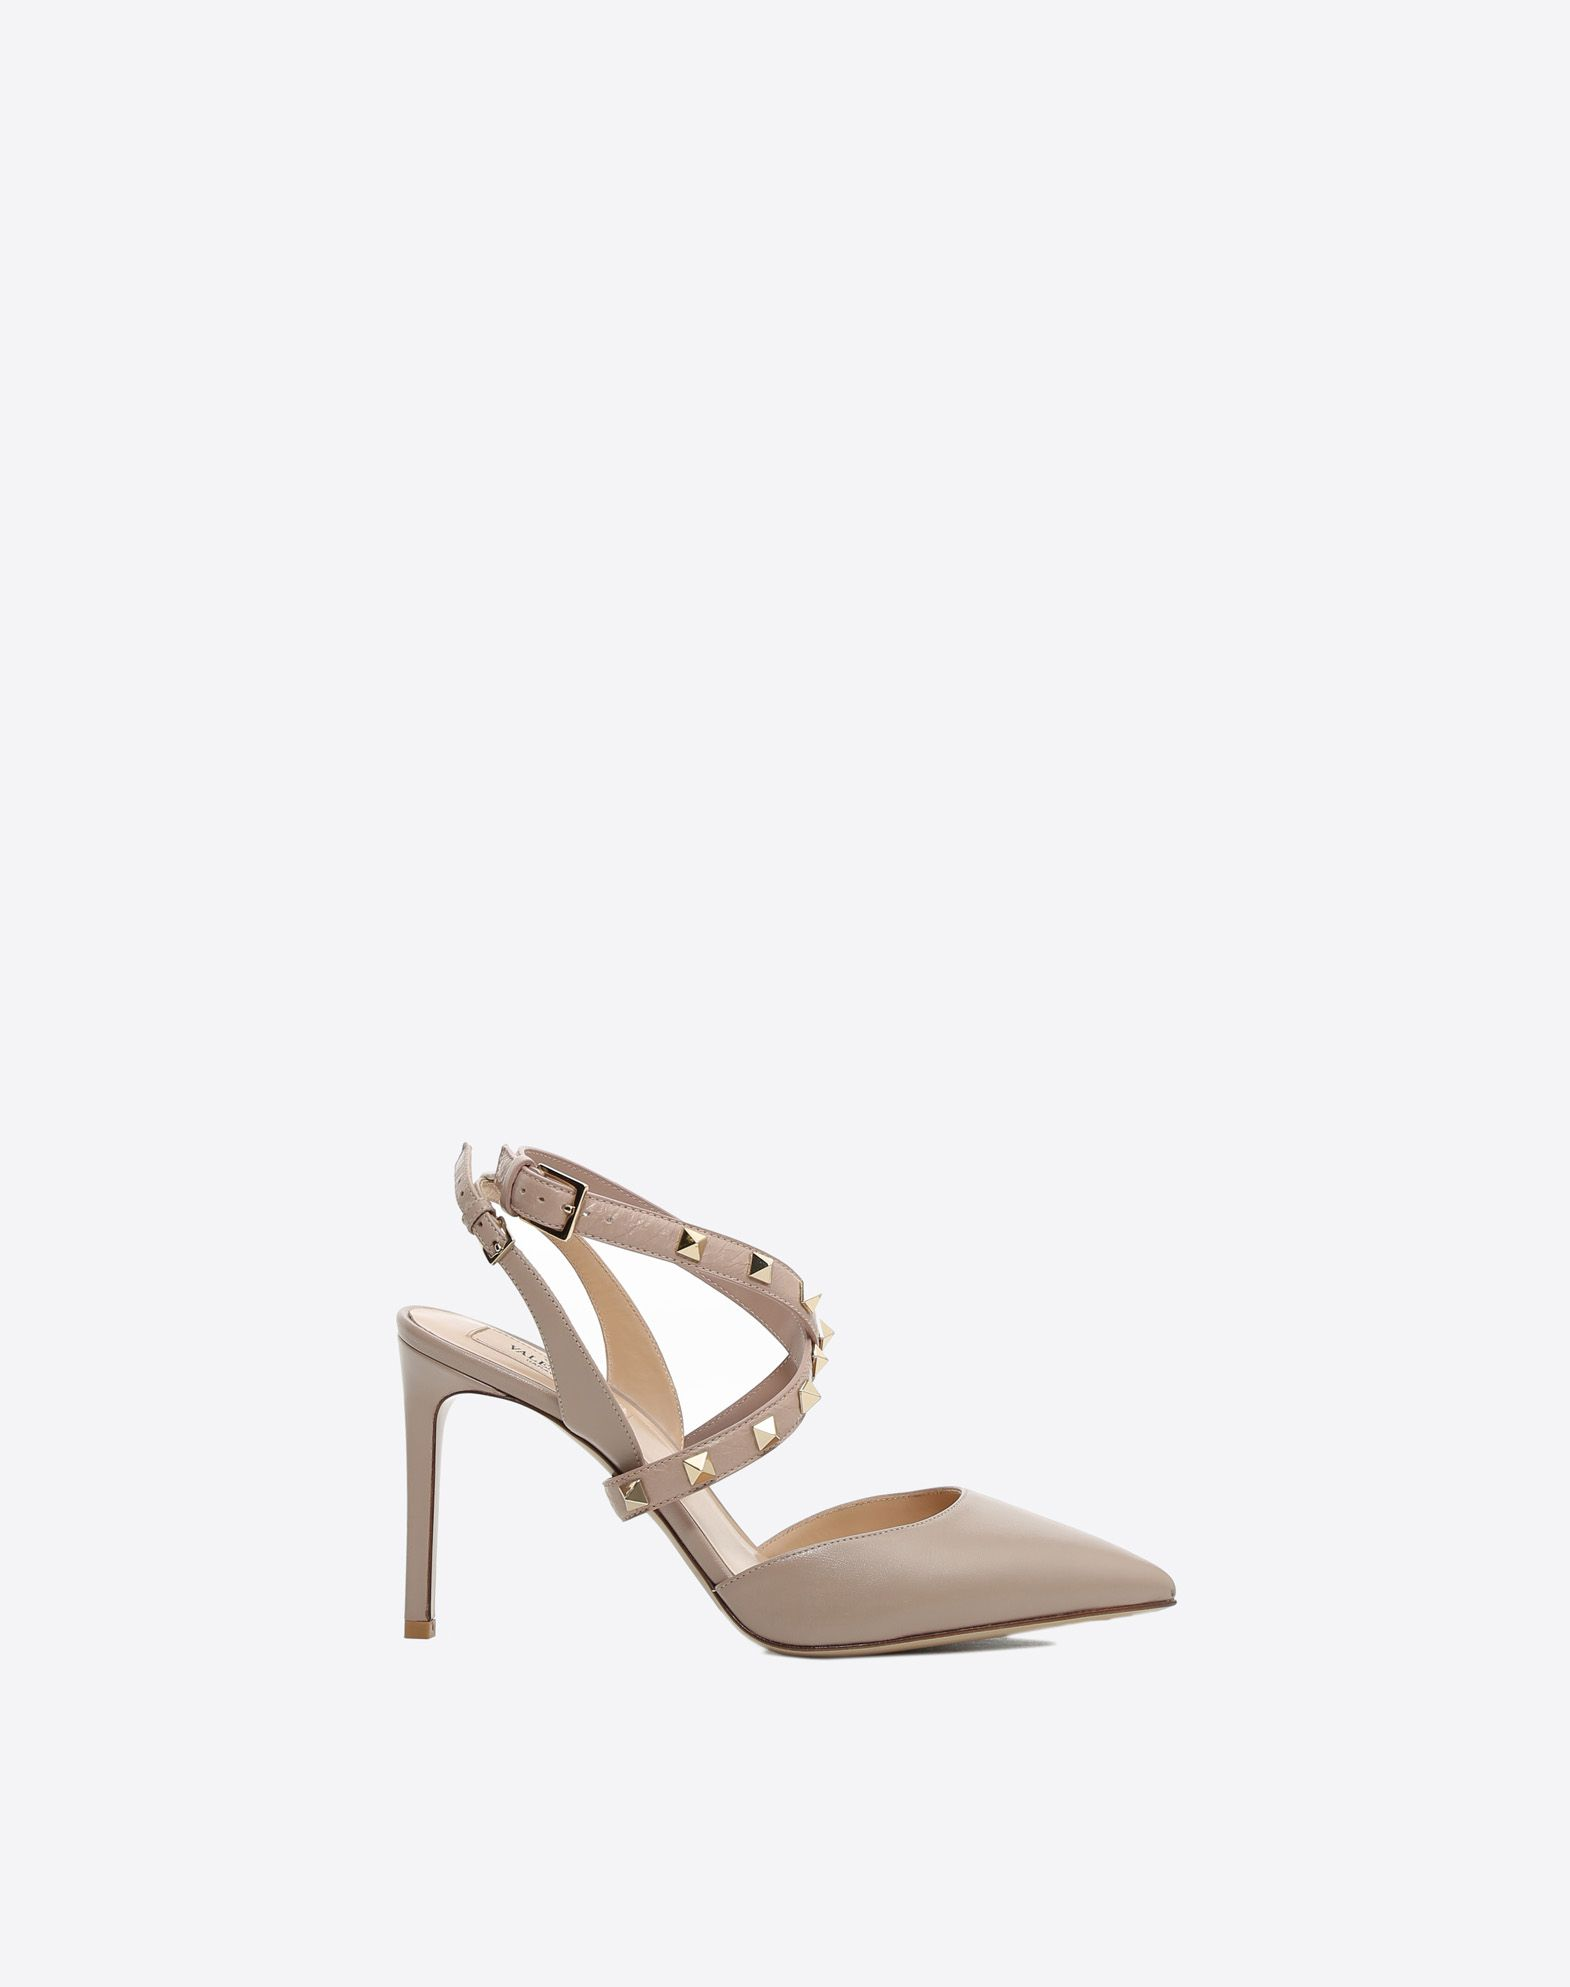 Rockstud 90 Cross Front Slingbacks in Poudre Leather with Studs Valentino 7lfyw0A8x